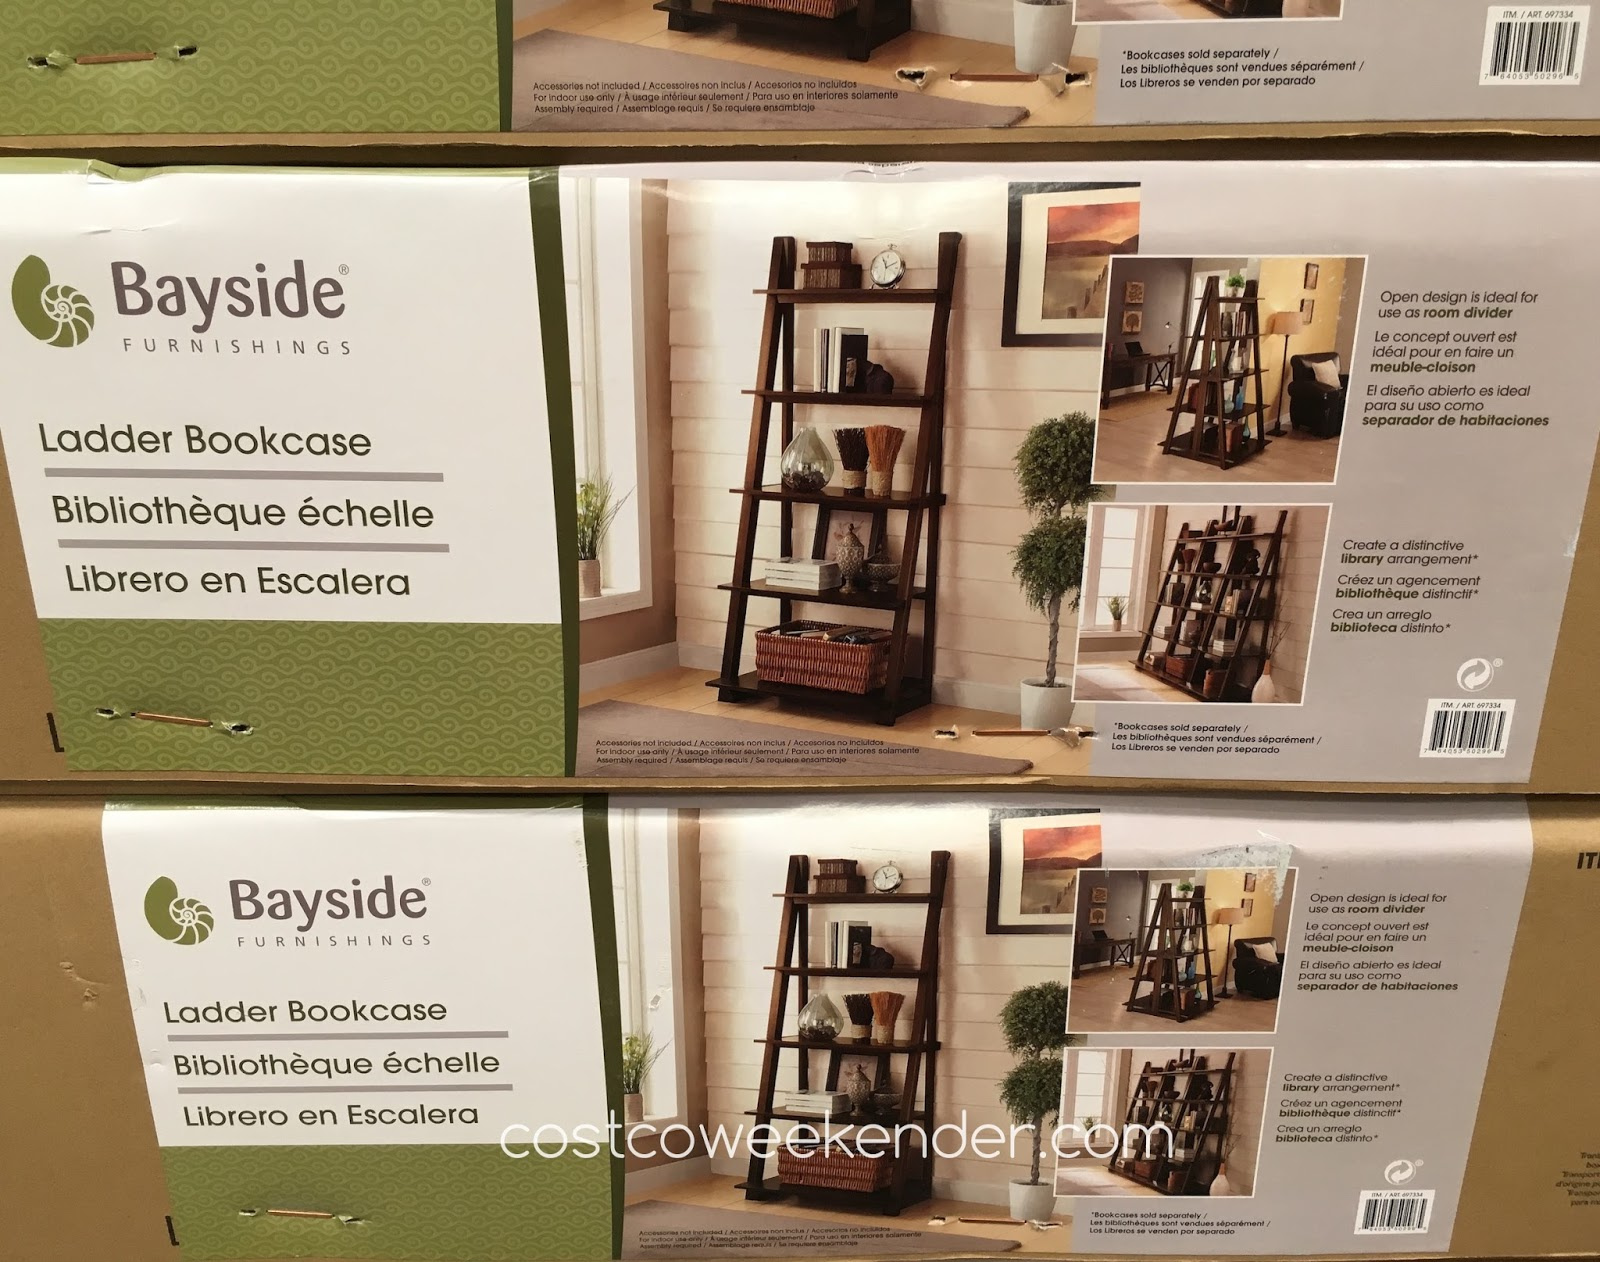 Bayside Furnishings Ladder Bookcase | Costco Weekender